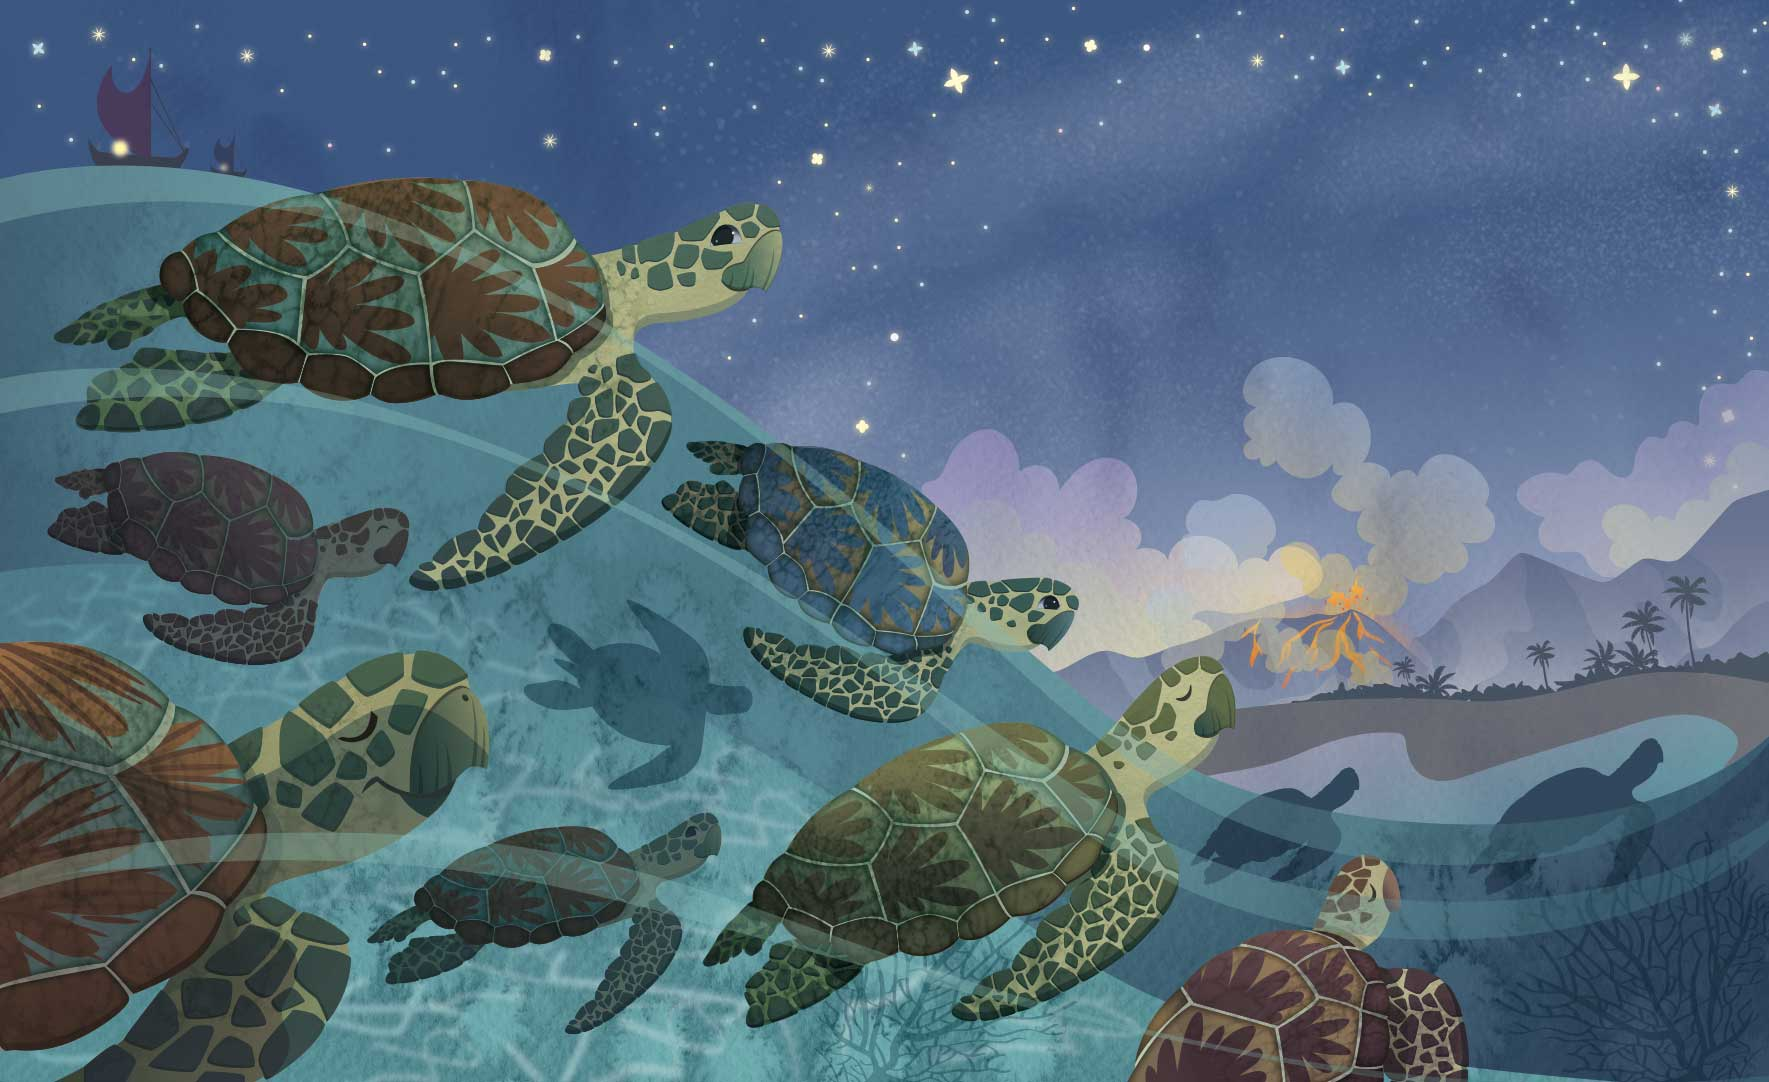 Jamie Tablason Illustration turtles in water swimming